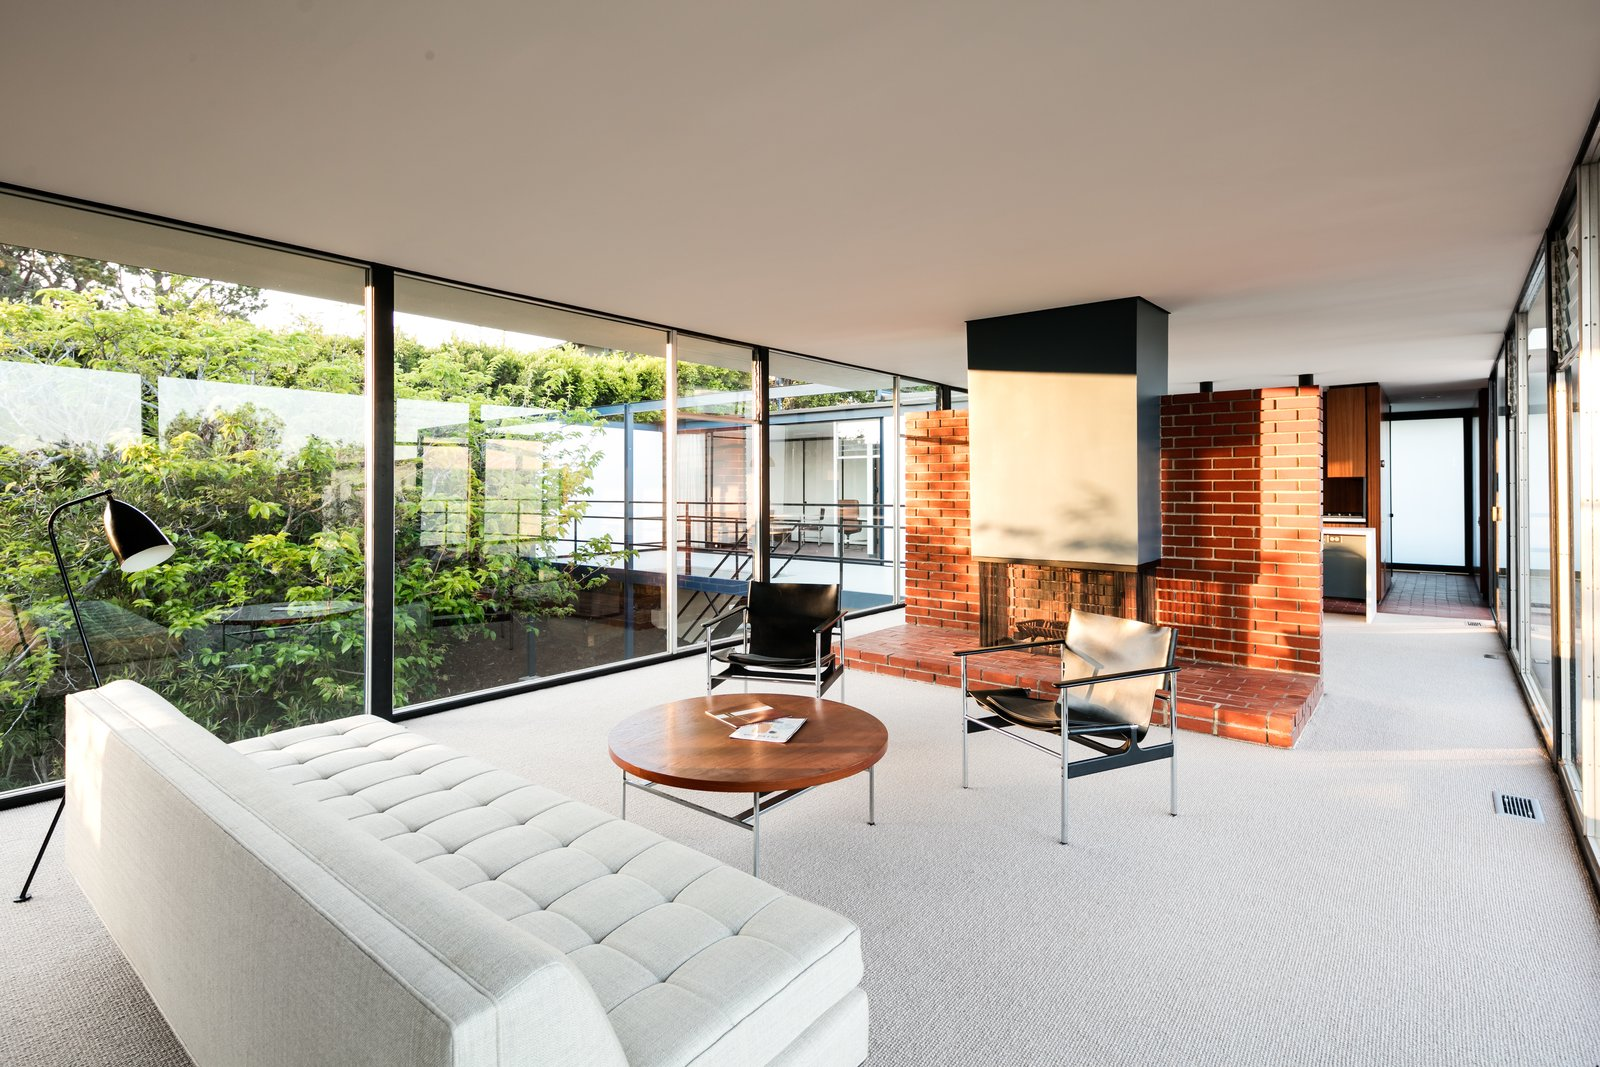 Living, Sofa, Chair, Standard Layout, Carpet, Coffee Tables, and Floor A look at the open living plan. Note the fireplace is set in the center of the space against a brick dividing wall.     Best Living Standard Layout Carpet Photos from Craig Ellwood's Iconic Smith House in L.A. Is Listed For $3M